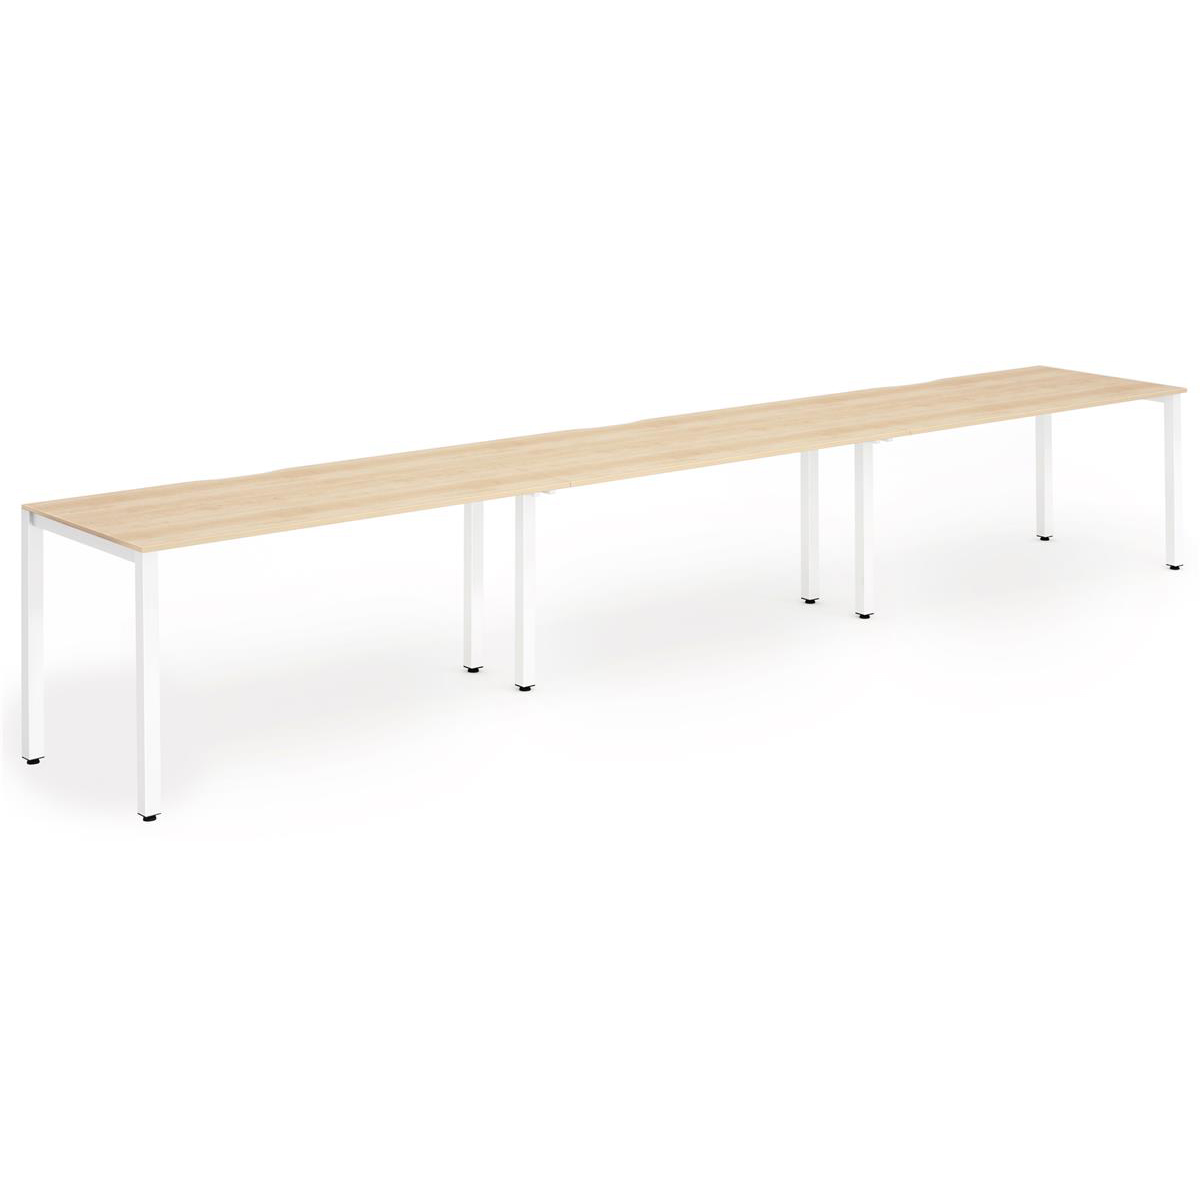 Trexus Bench Desk 3 Person Side to Side Configuration White Leg 3600x800mm Maple Ref BE396